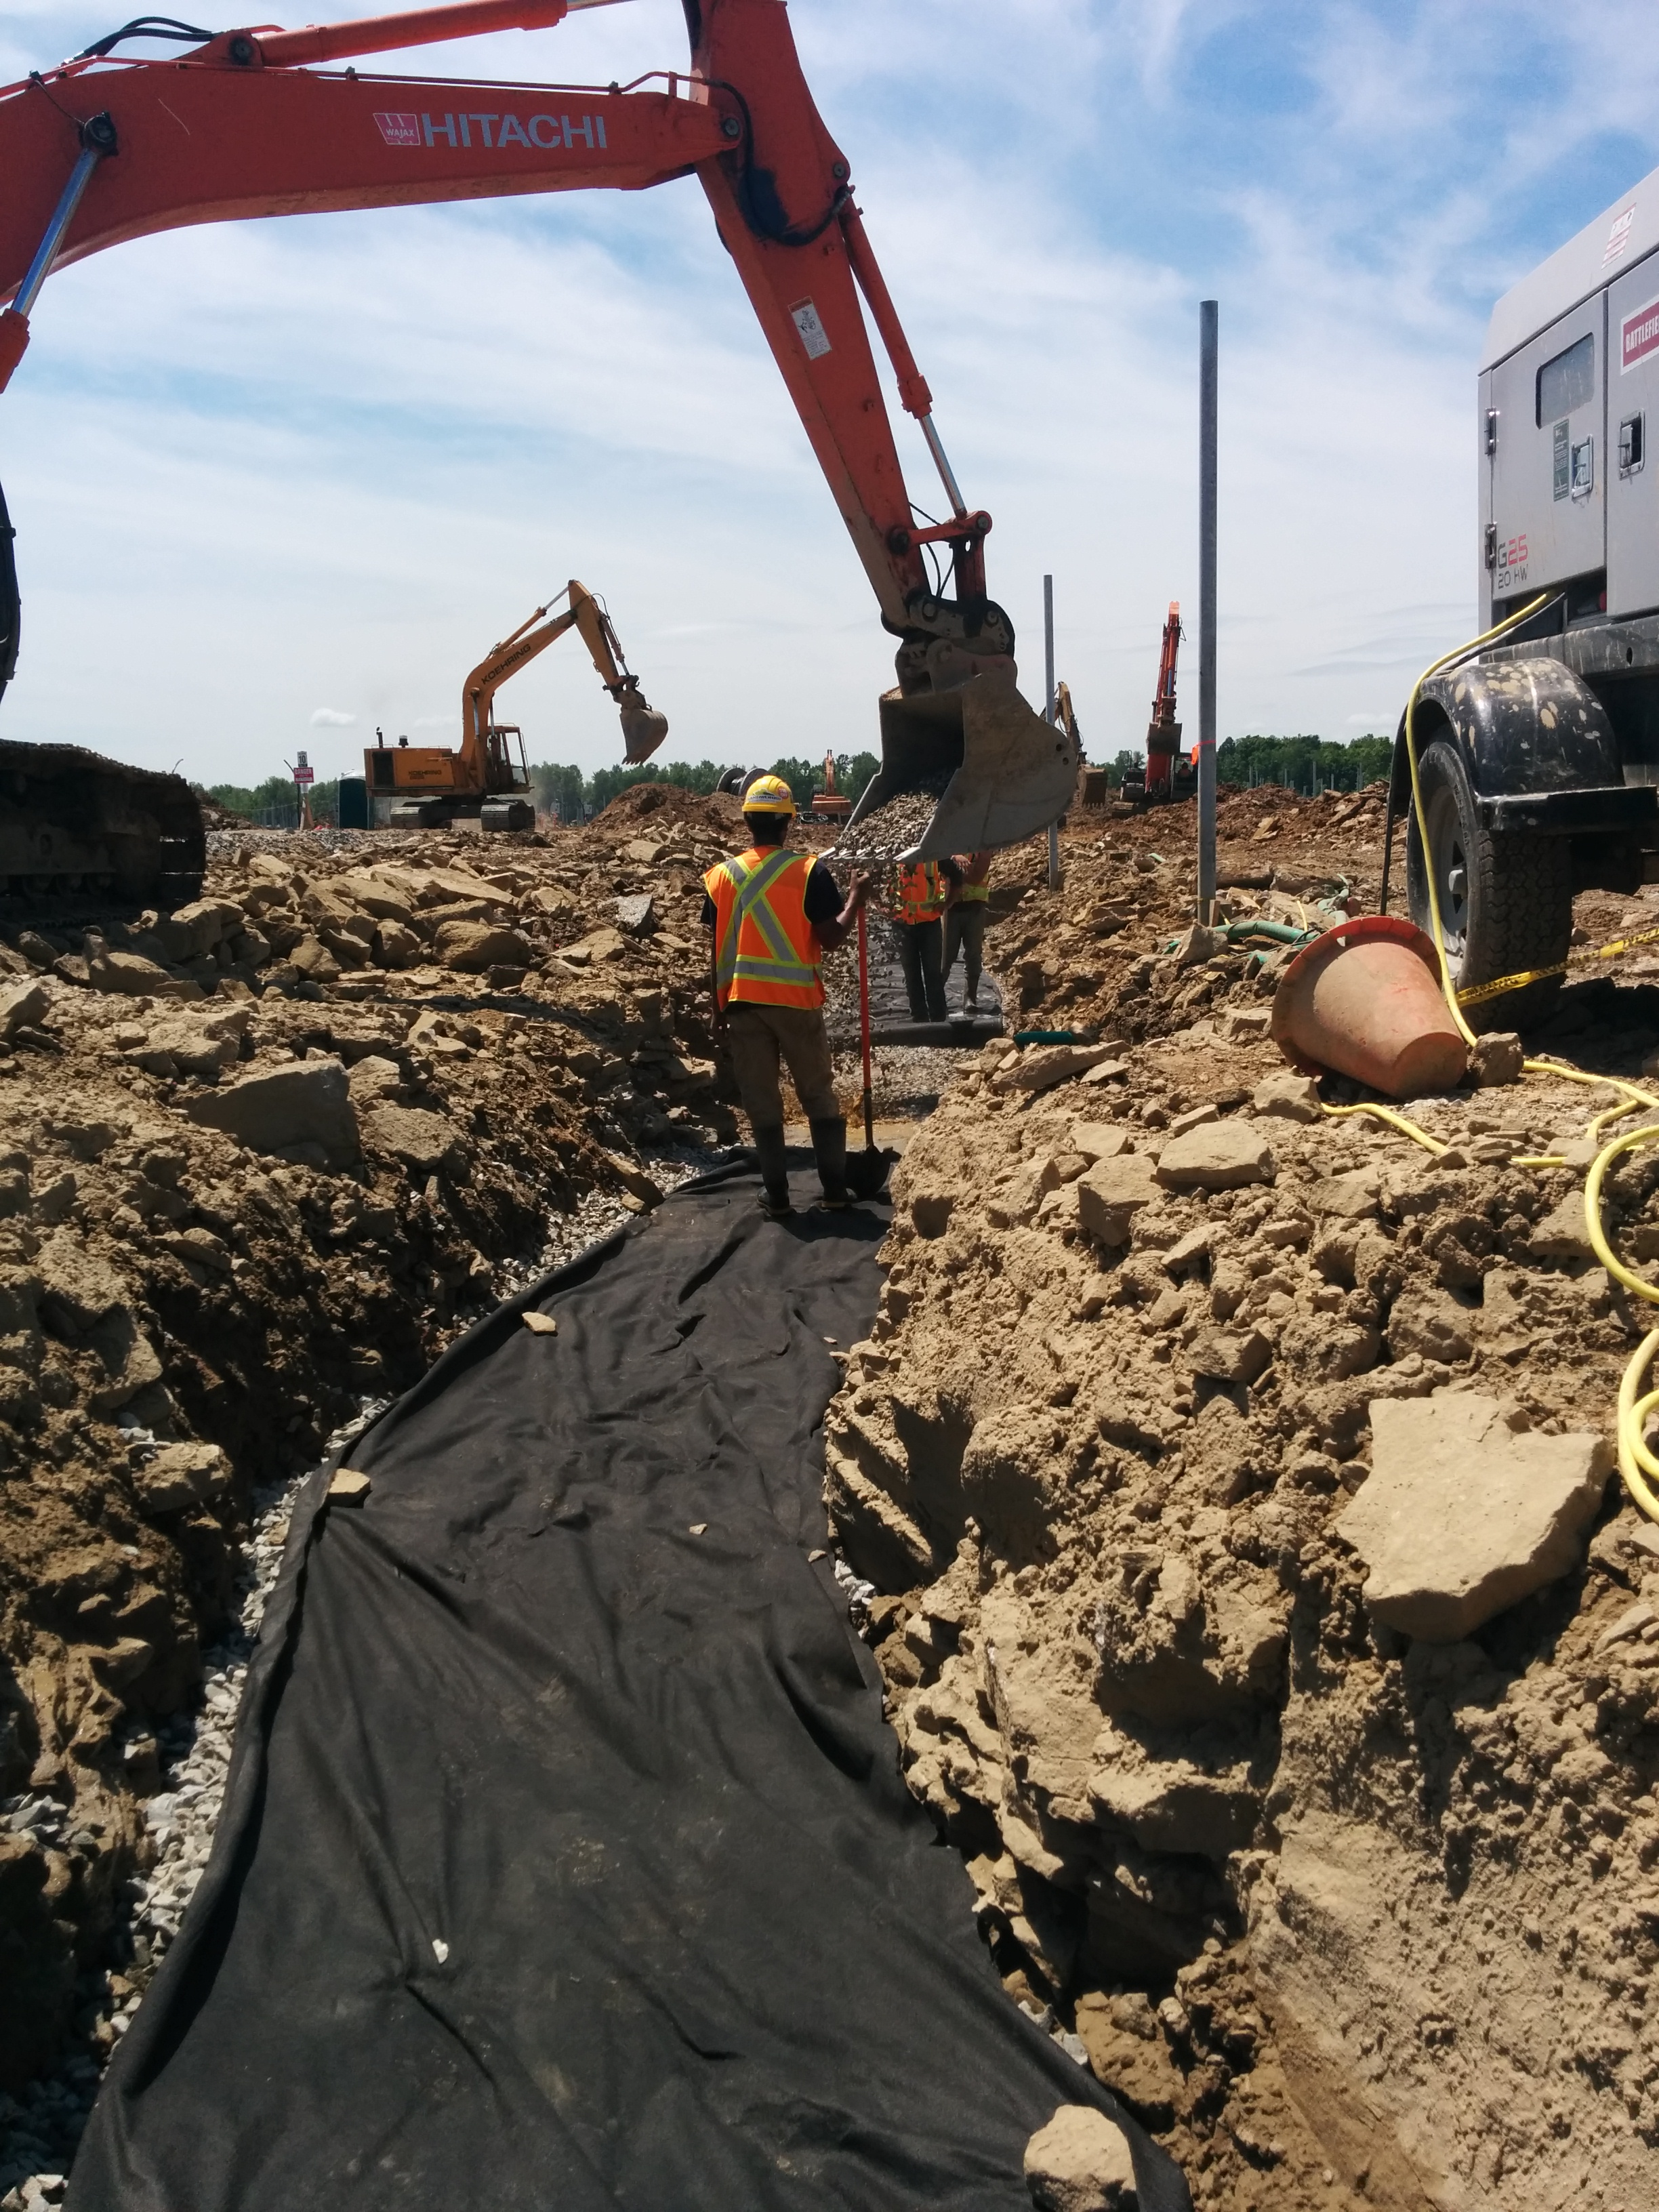 Installing water controls in DC cable trench.